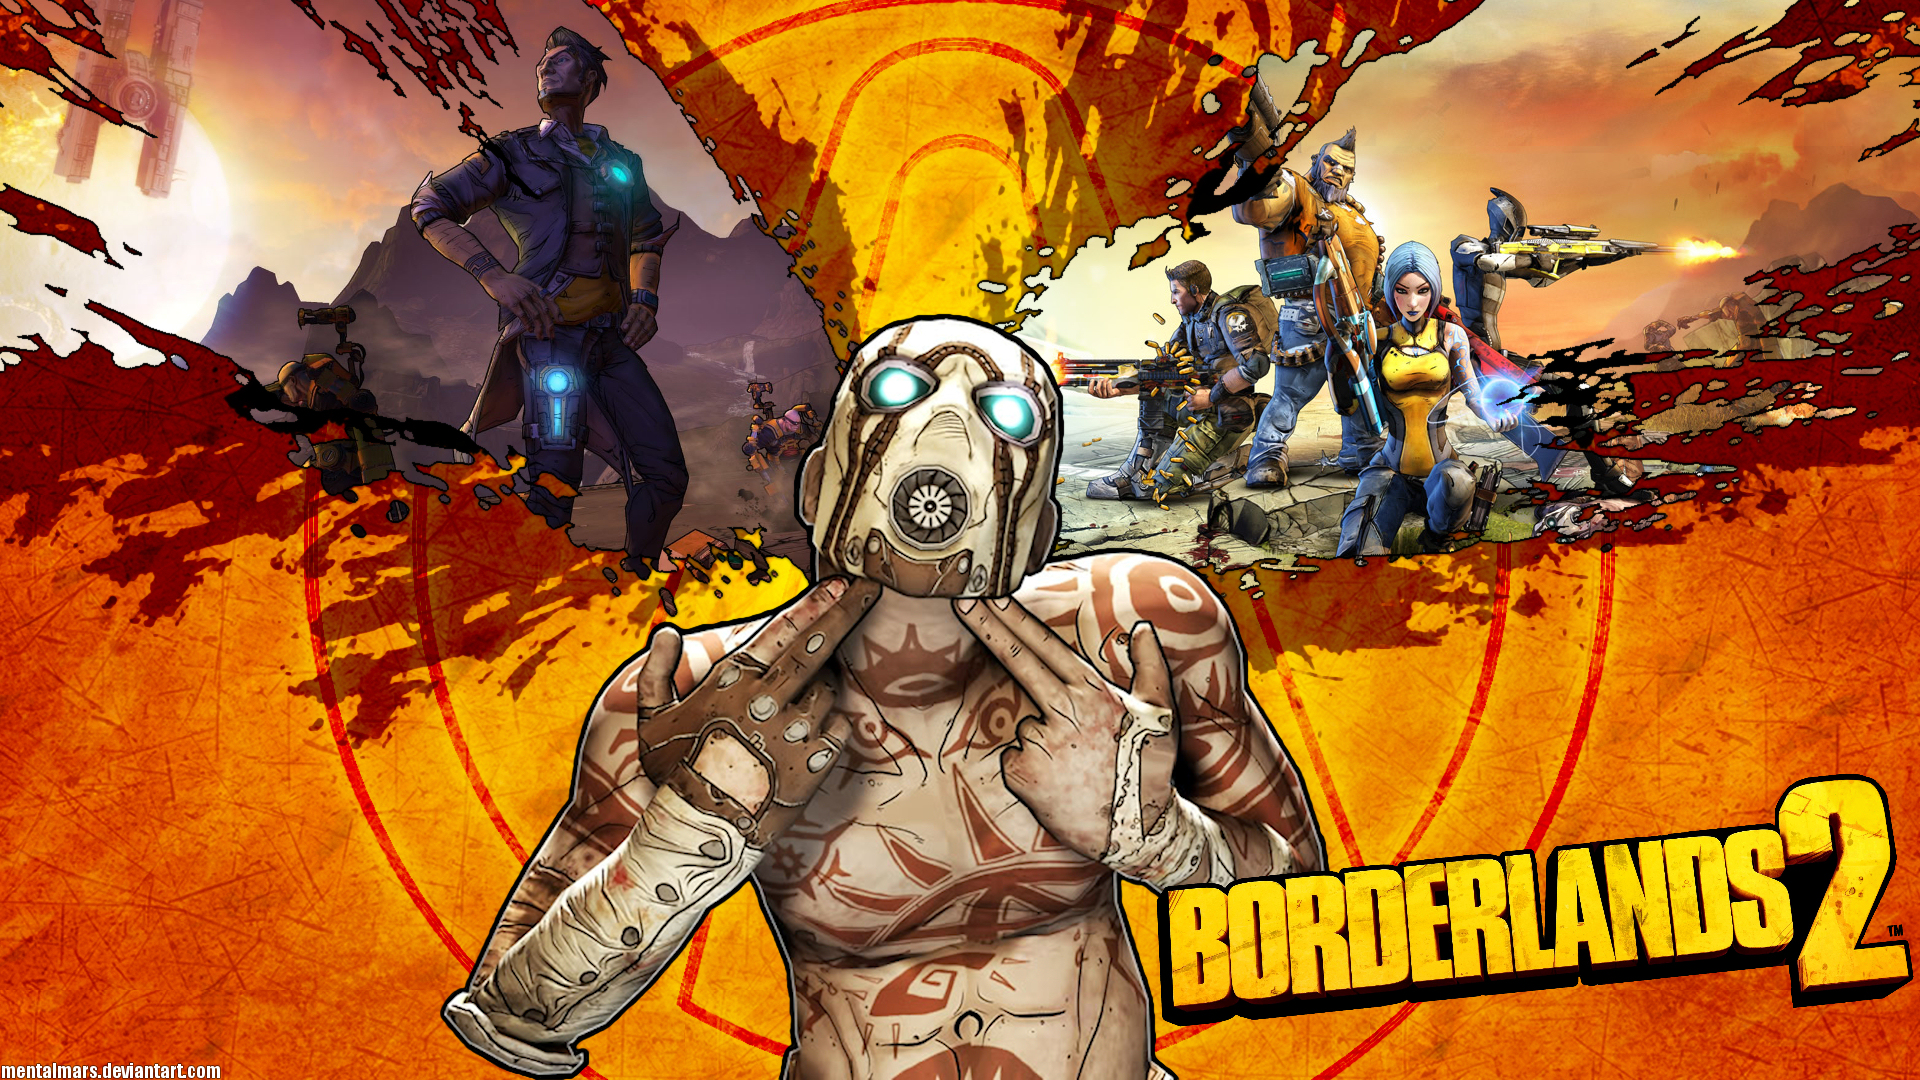 Borderlands 2 Desktop